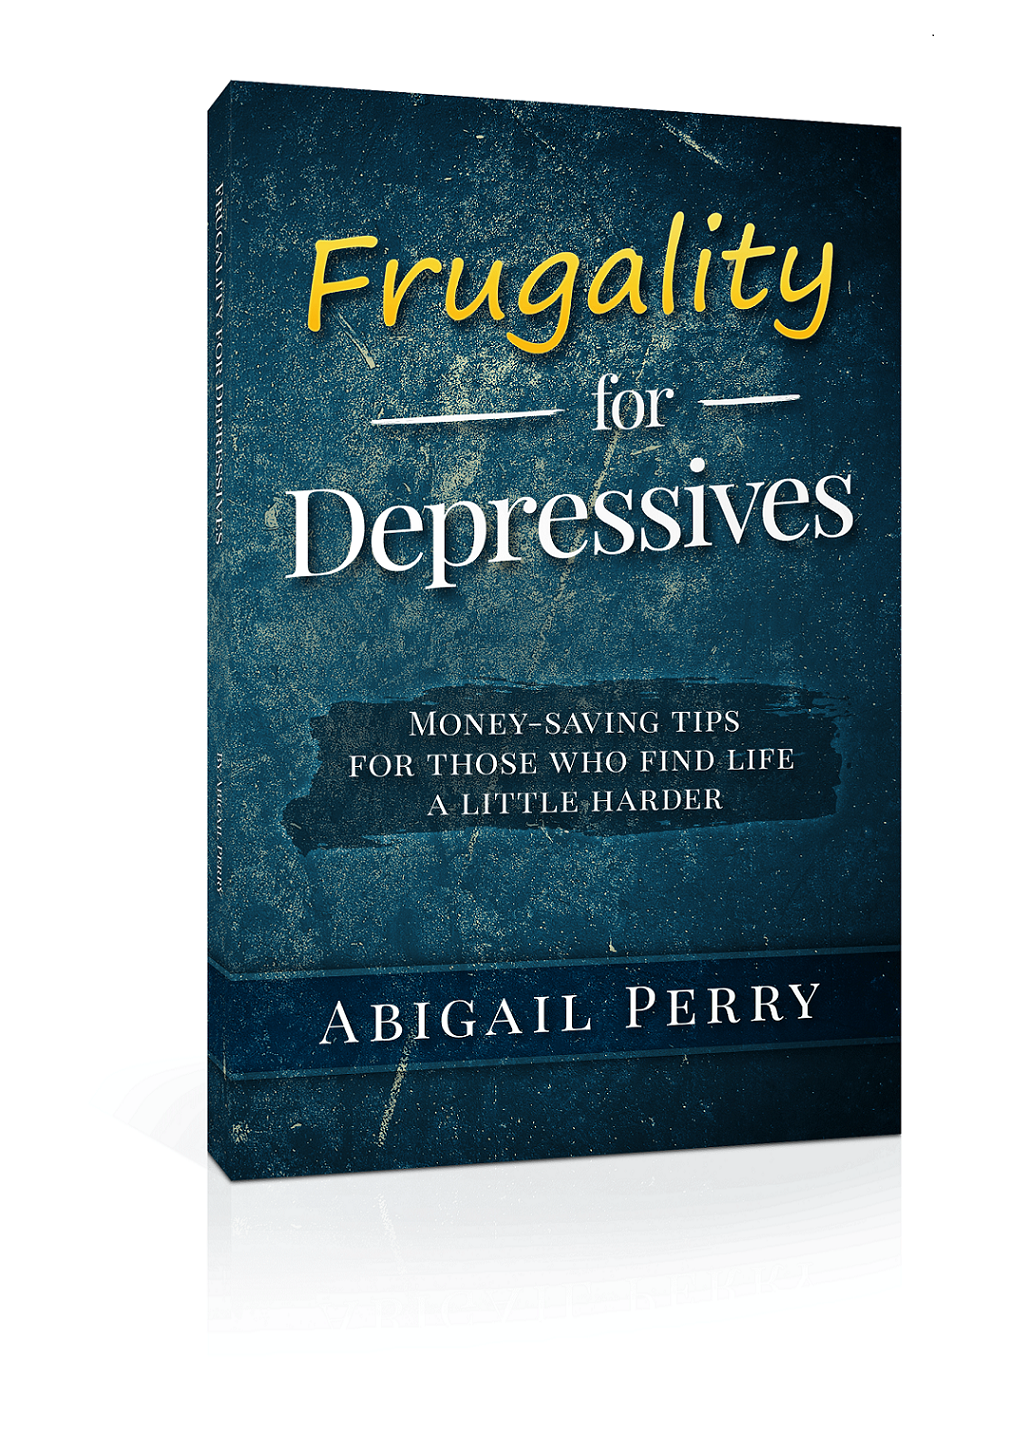 Depression makes things harder, not impossible! This has all sorts of new approaches to classic frugal advice!